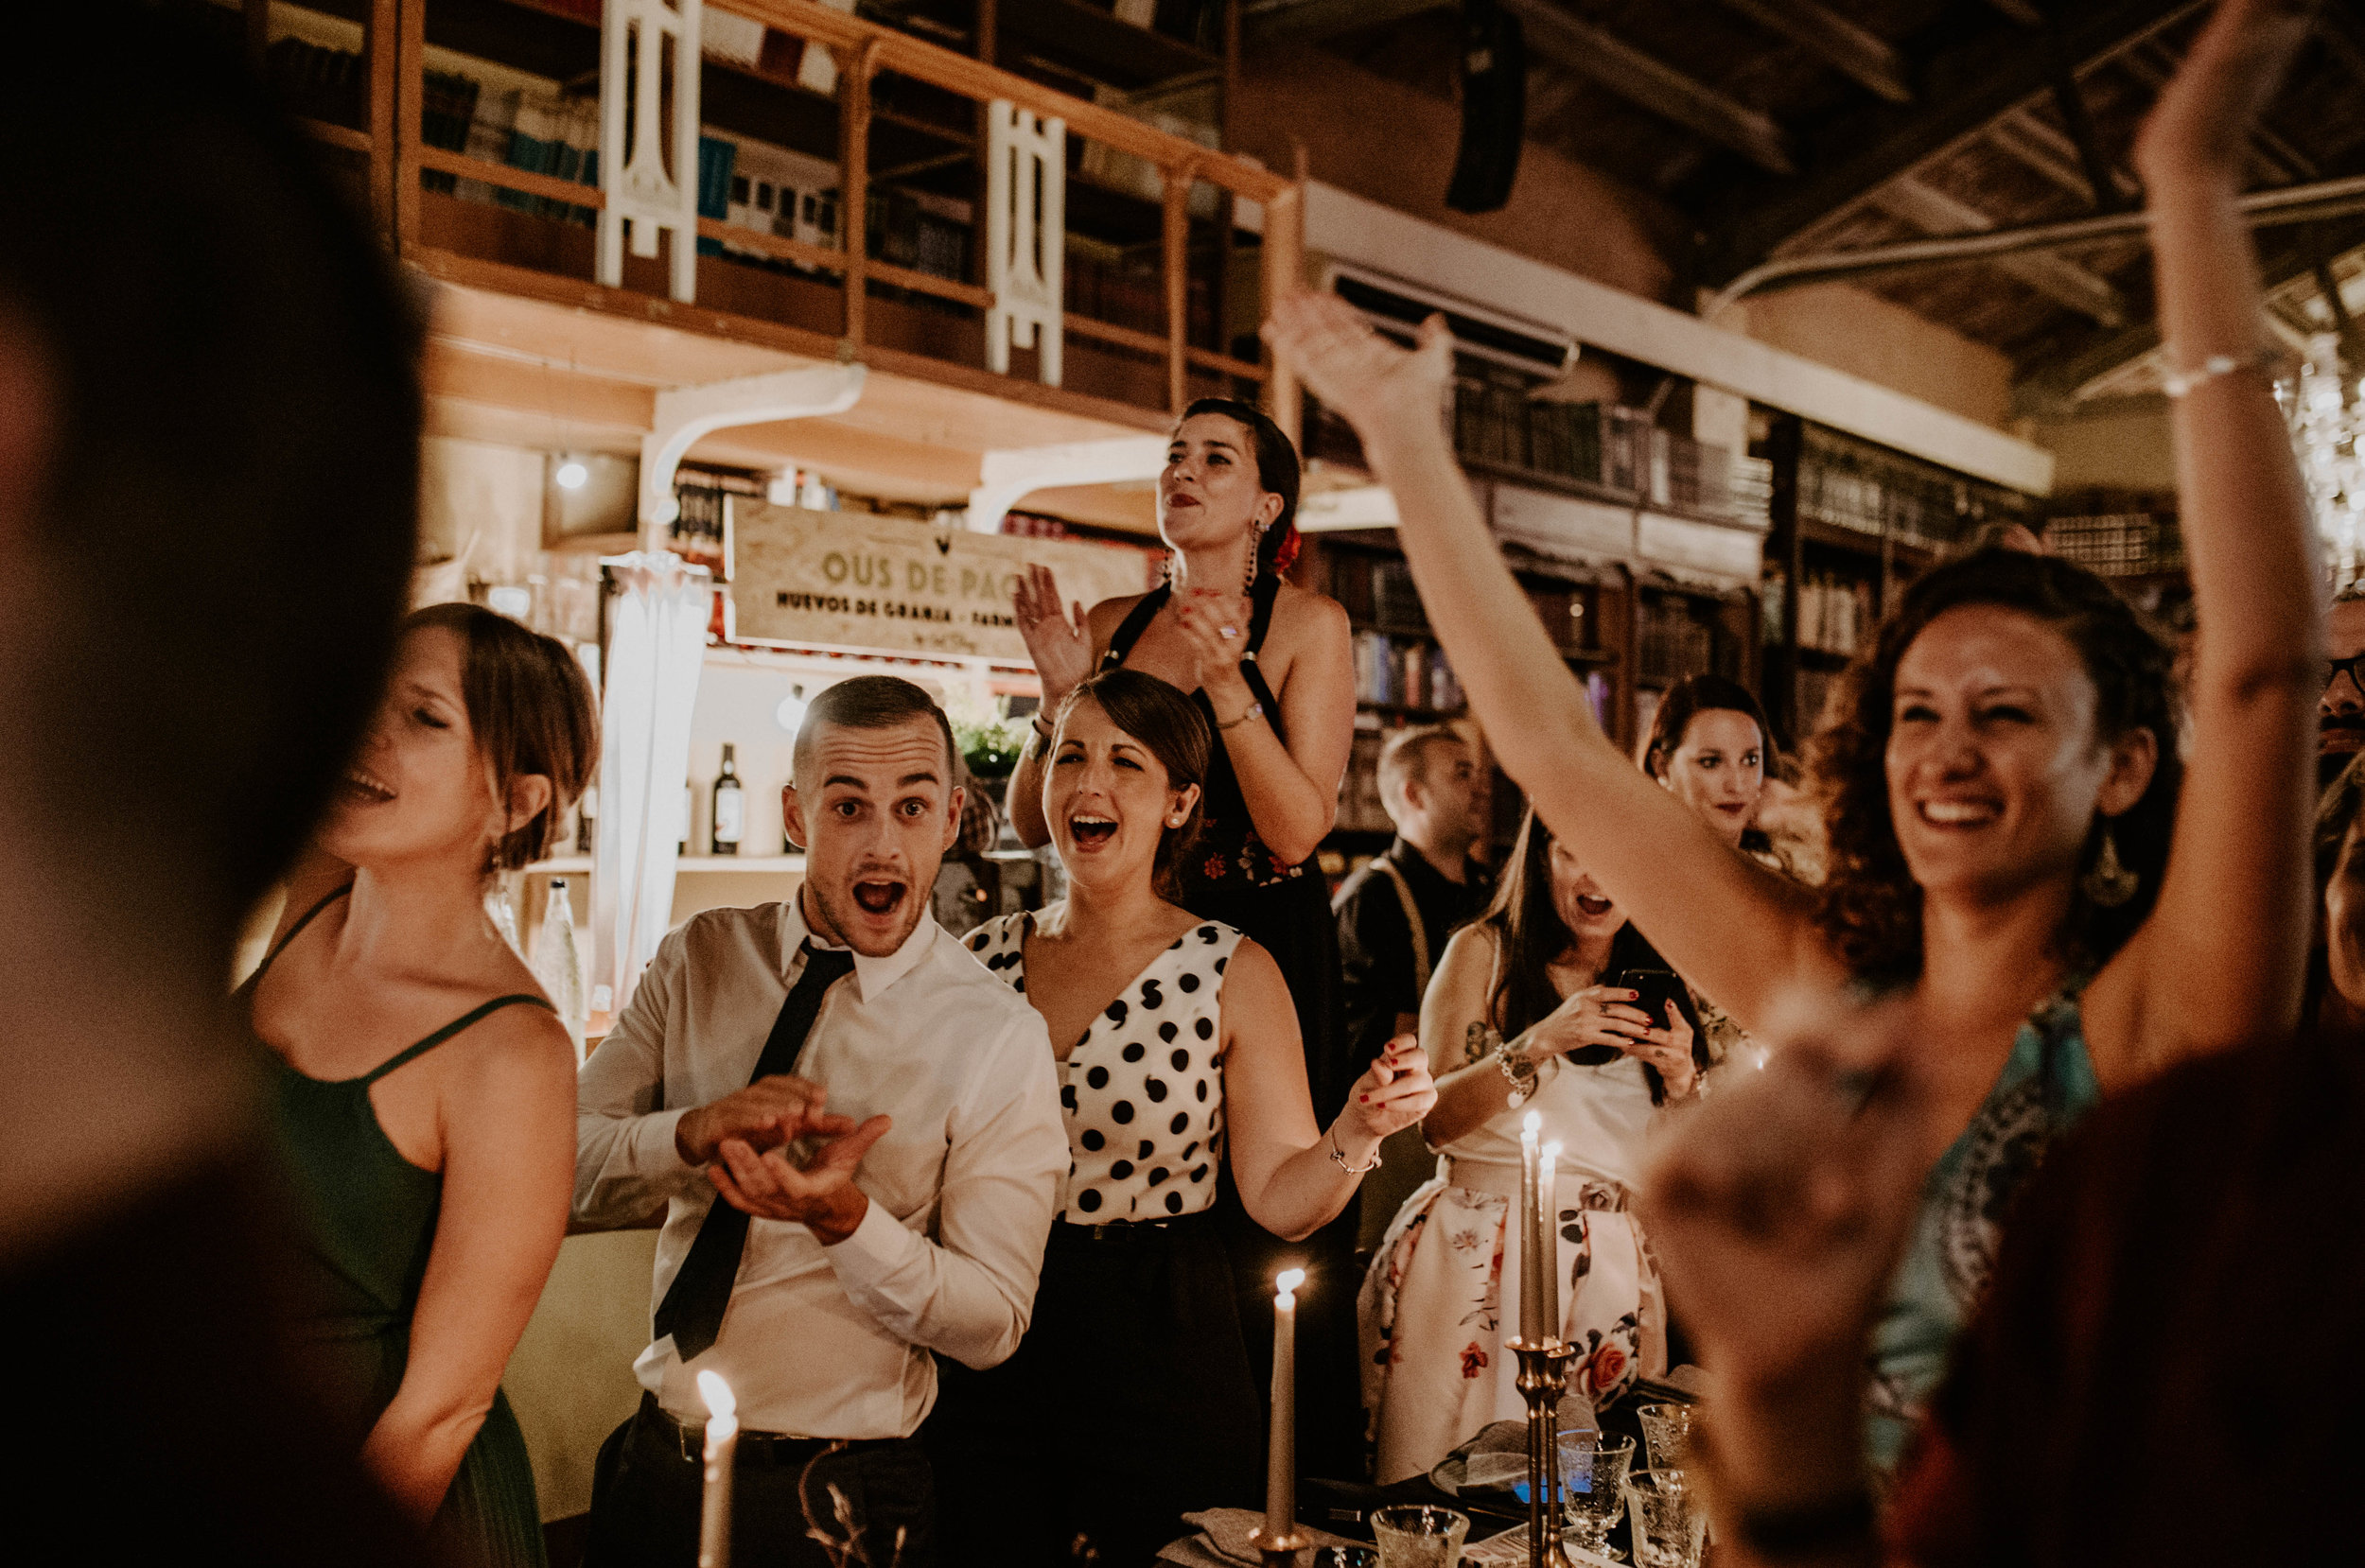 thenortherngirlphotography_bodasindustriales_bodasdiferentes_weddingphotographer_spanishphotographer_spanisgweddingphotographer_happyendings_mercantic_elsiglomercantic_antichrist_love_neon_weddingtattoo_CYNTHIAMANOLO-729.jpg